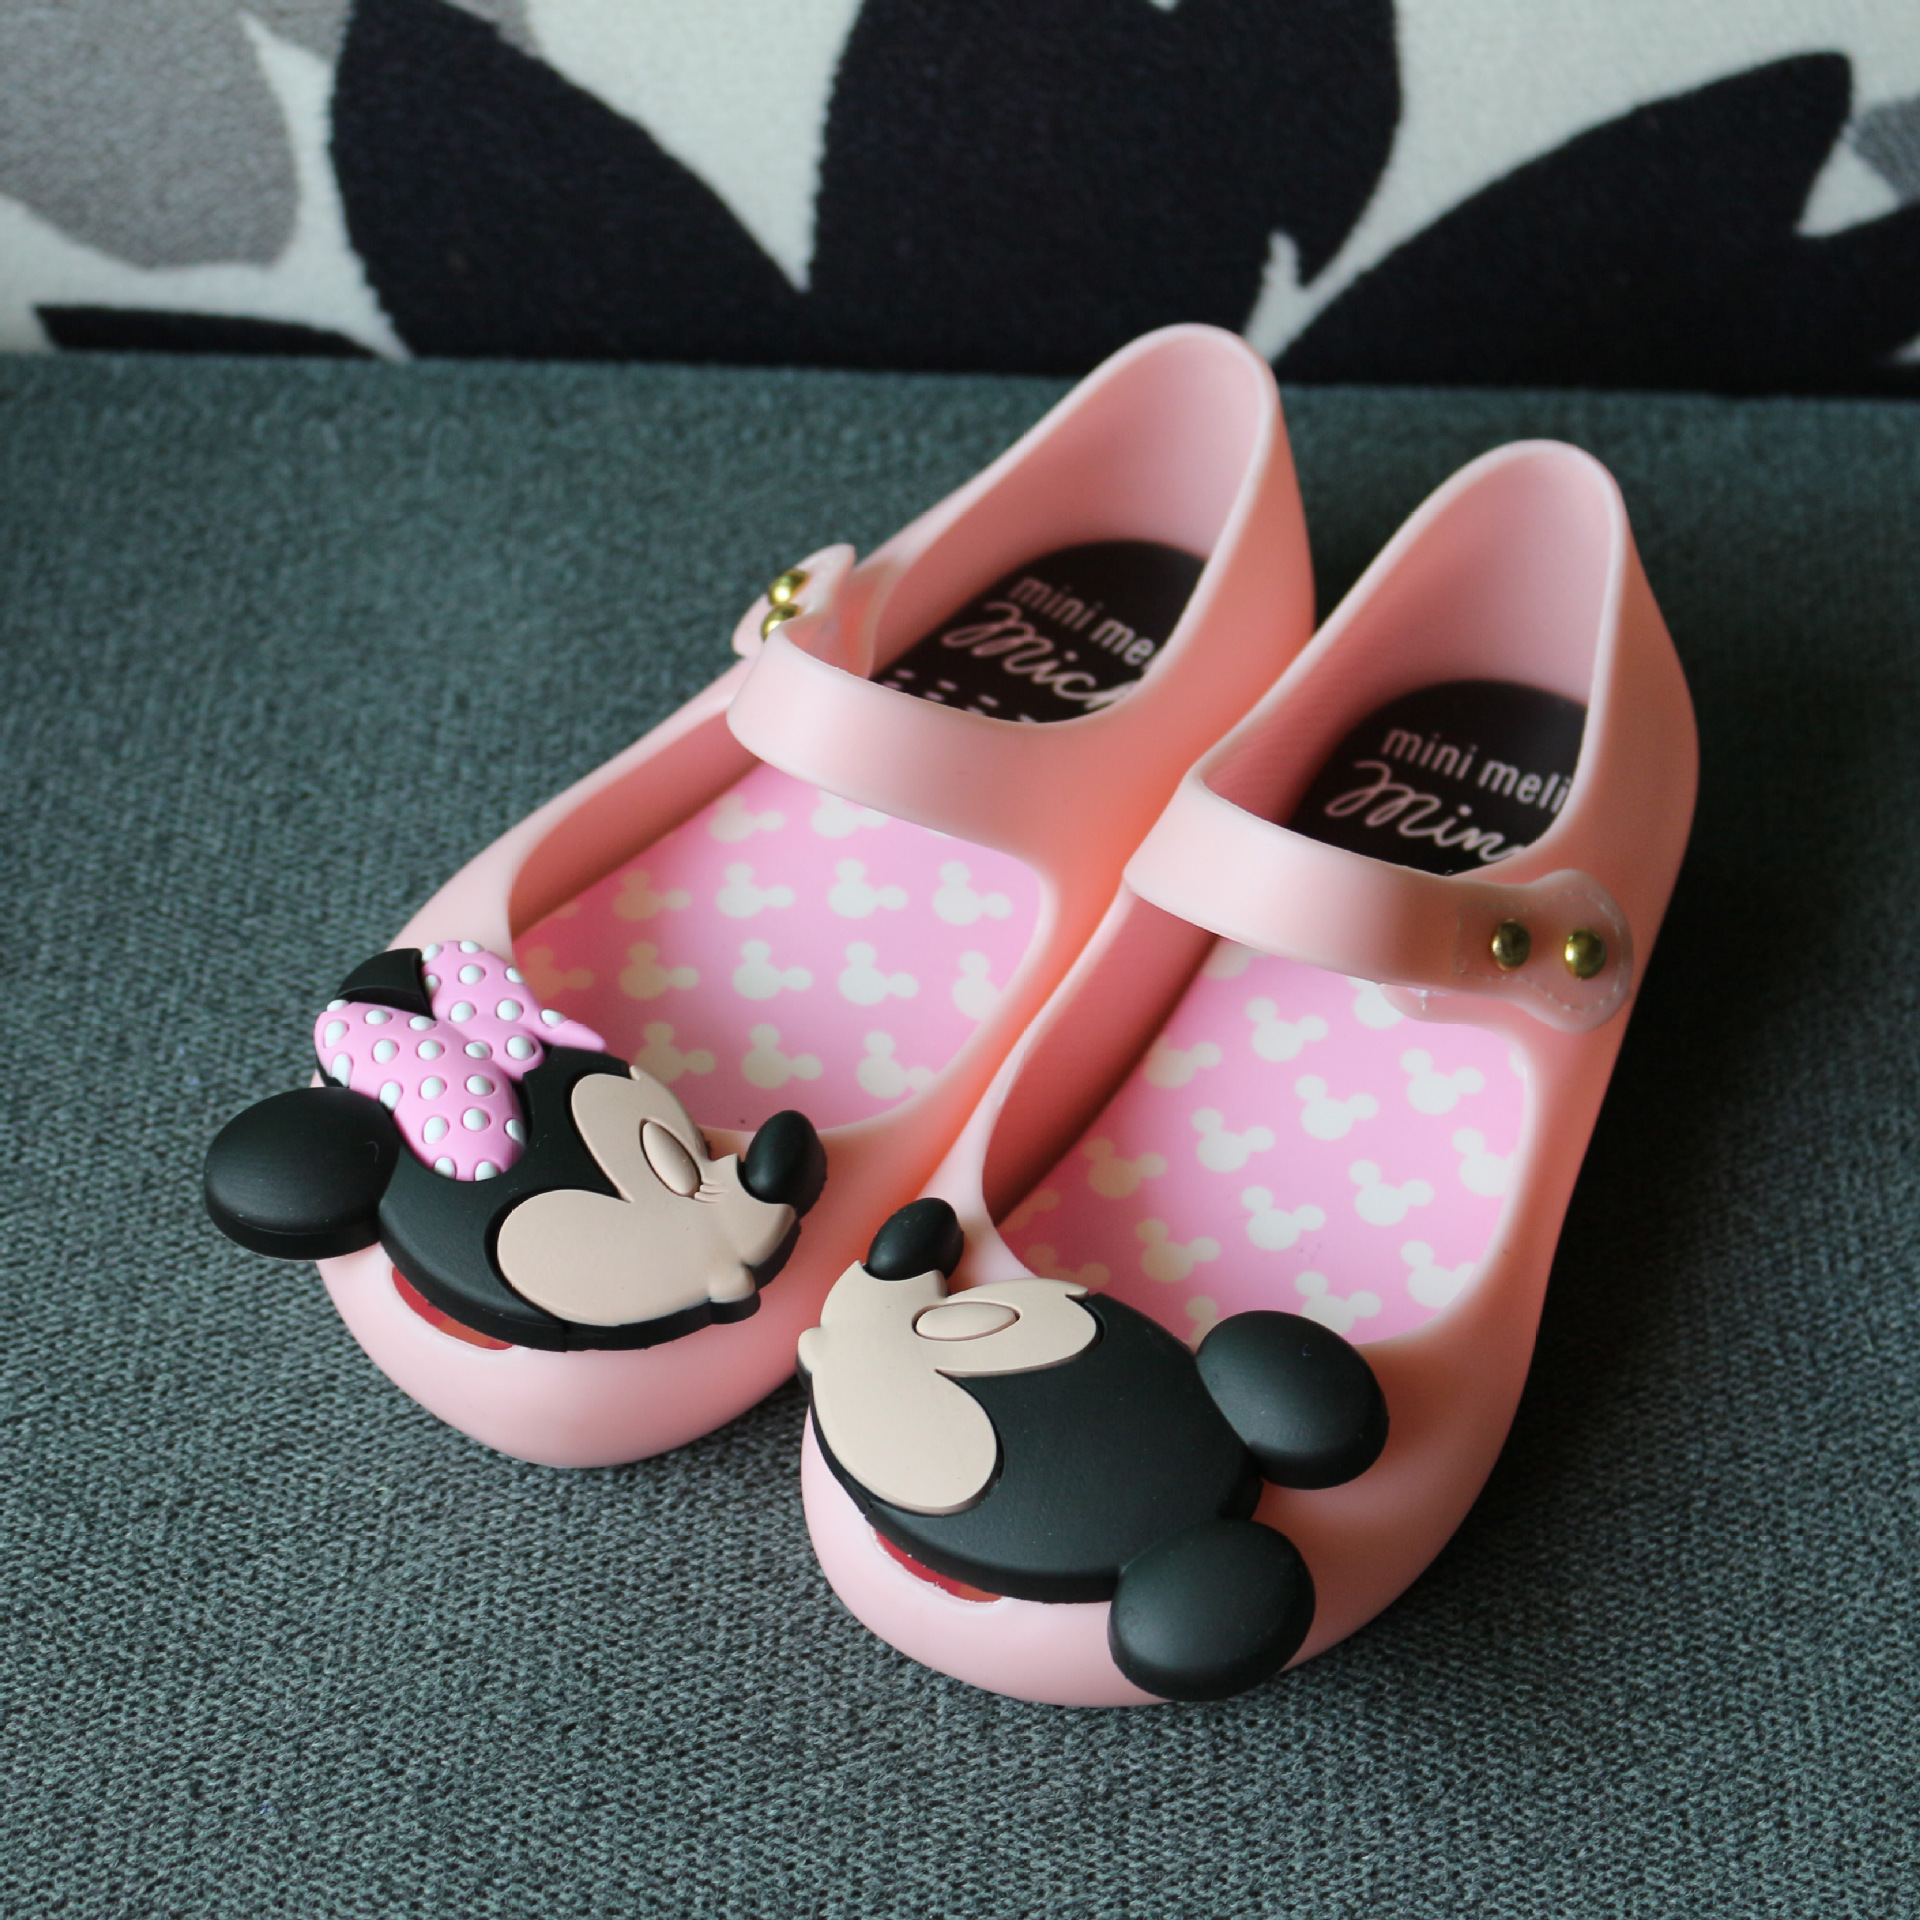 Mini-Melissa-Mickey-Girls-Jelly-Sandals-2017-Girls-Sandals-Jelly-Sandals-PVC-Children-Sandals-Melissa-Rain-Shoes-Minnie-Mouse-2